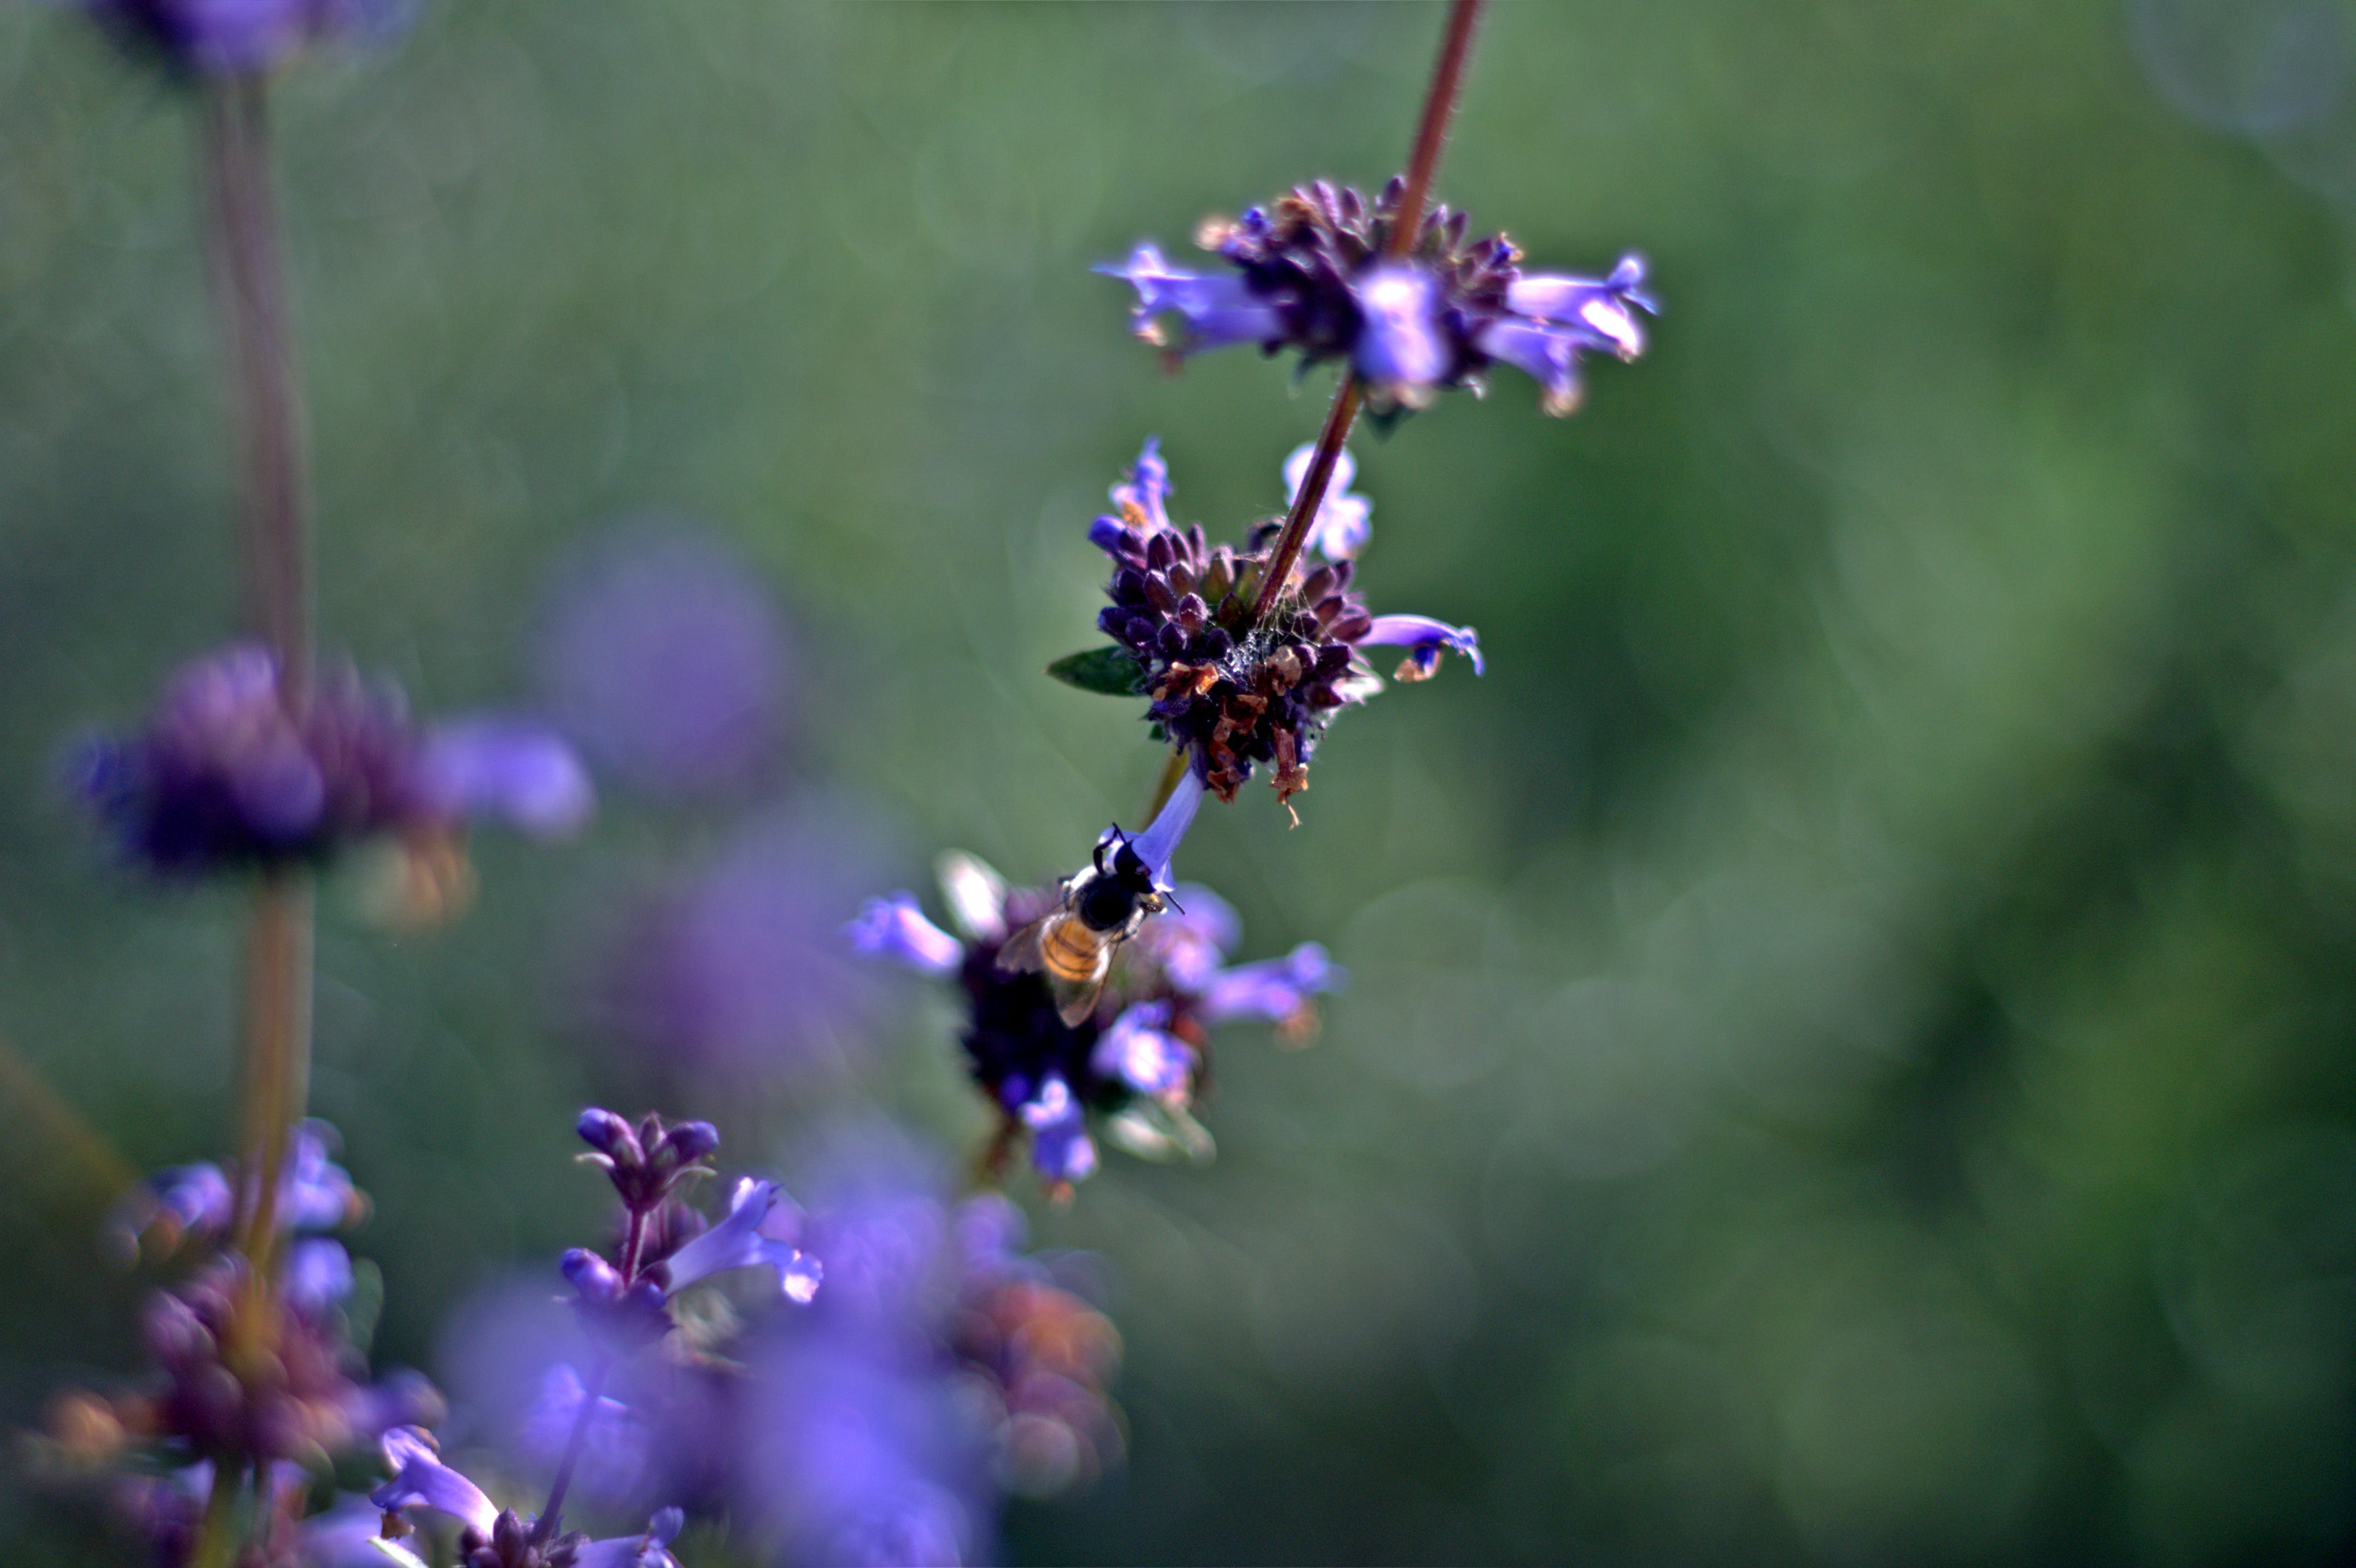 Free stock photo of bees, close-up, nature, purple flowers